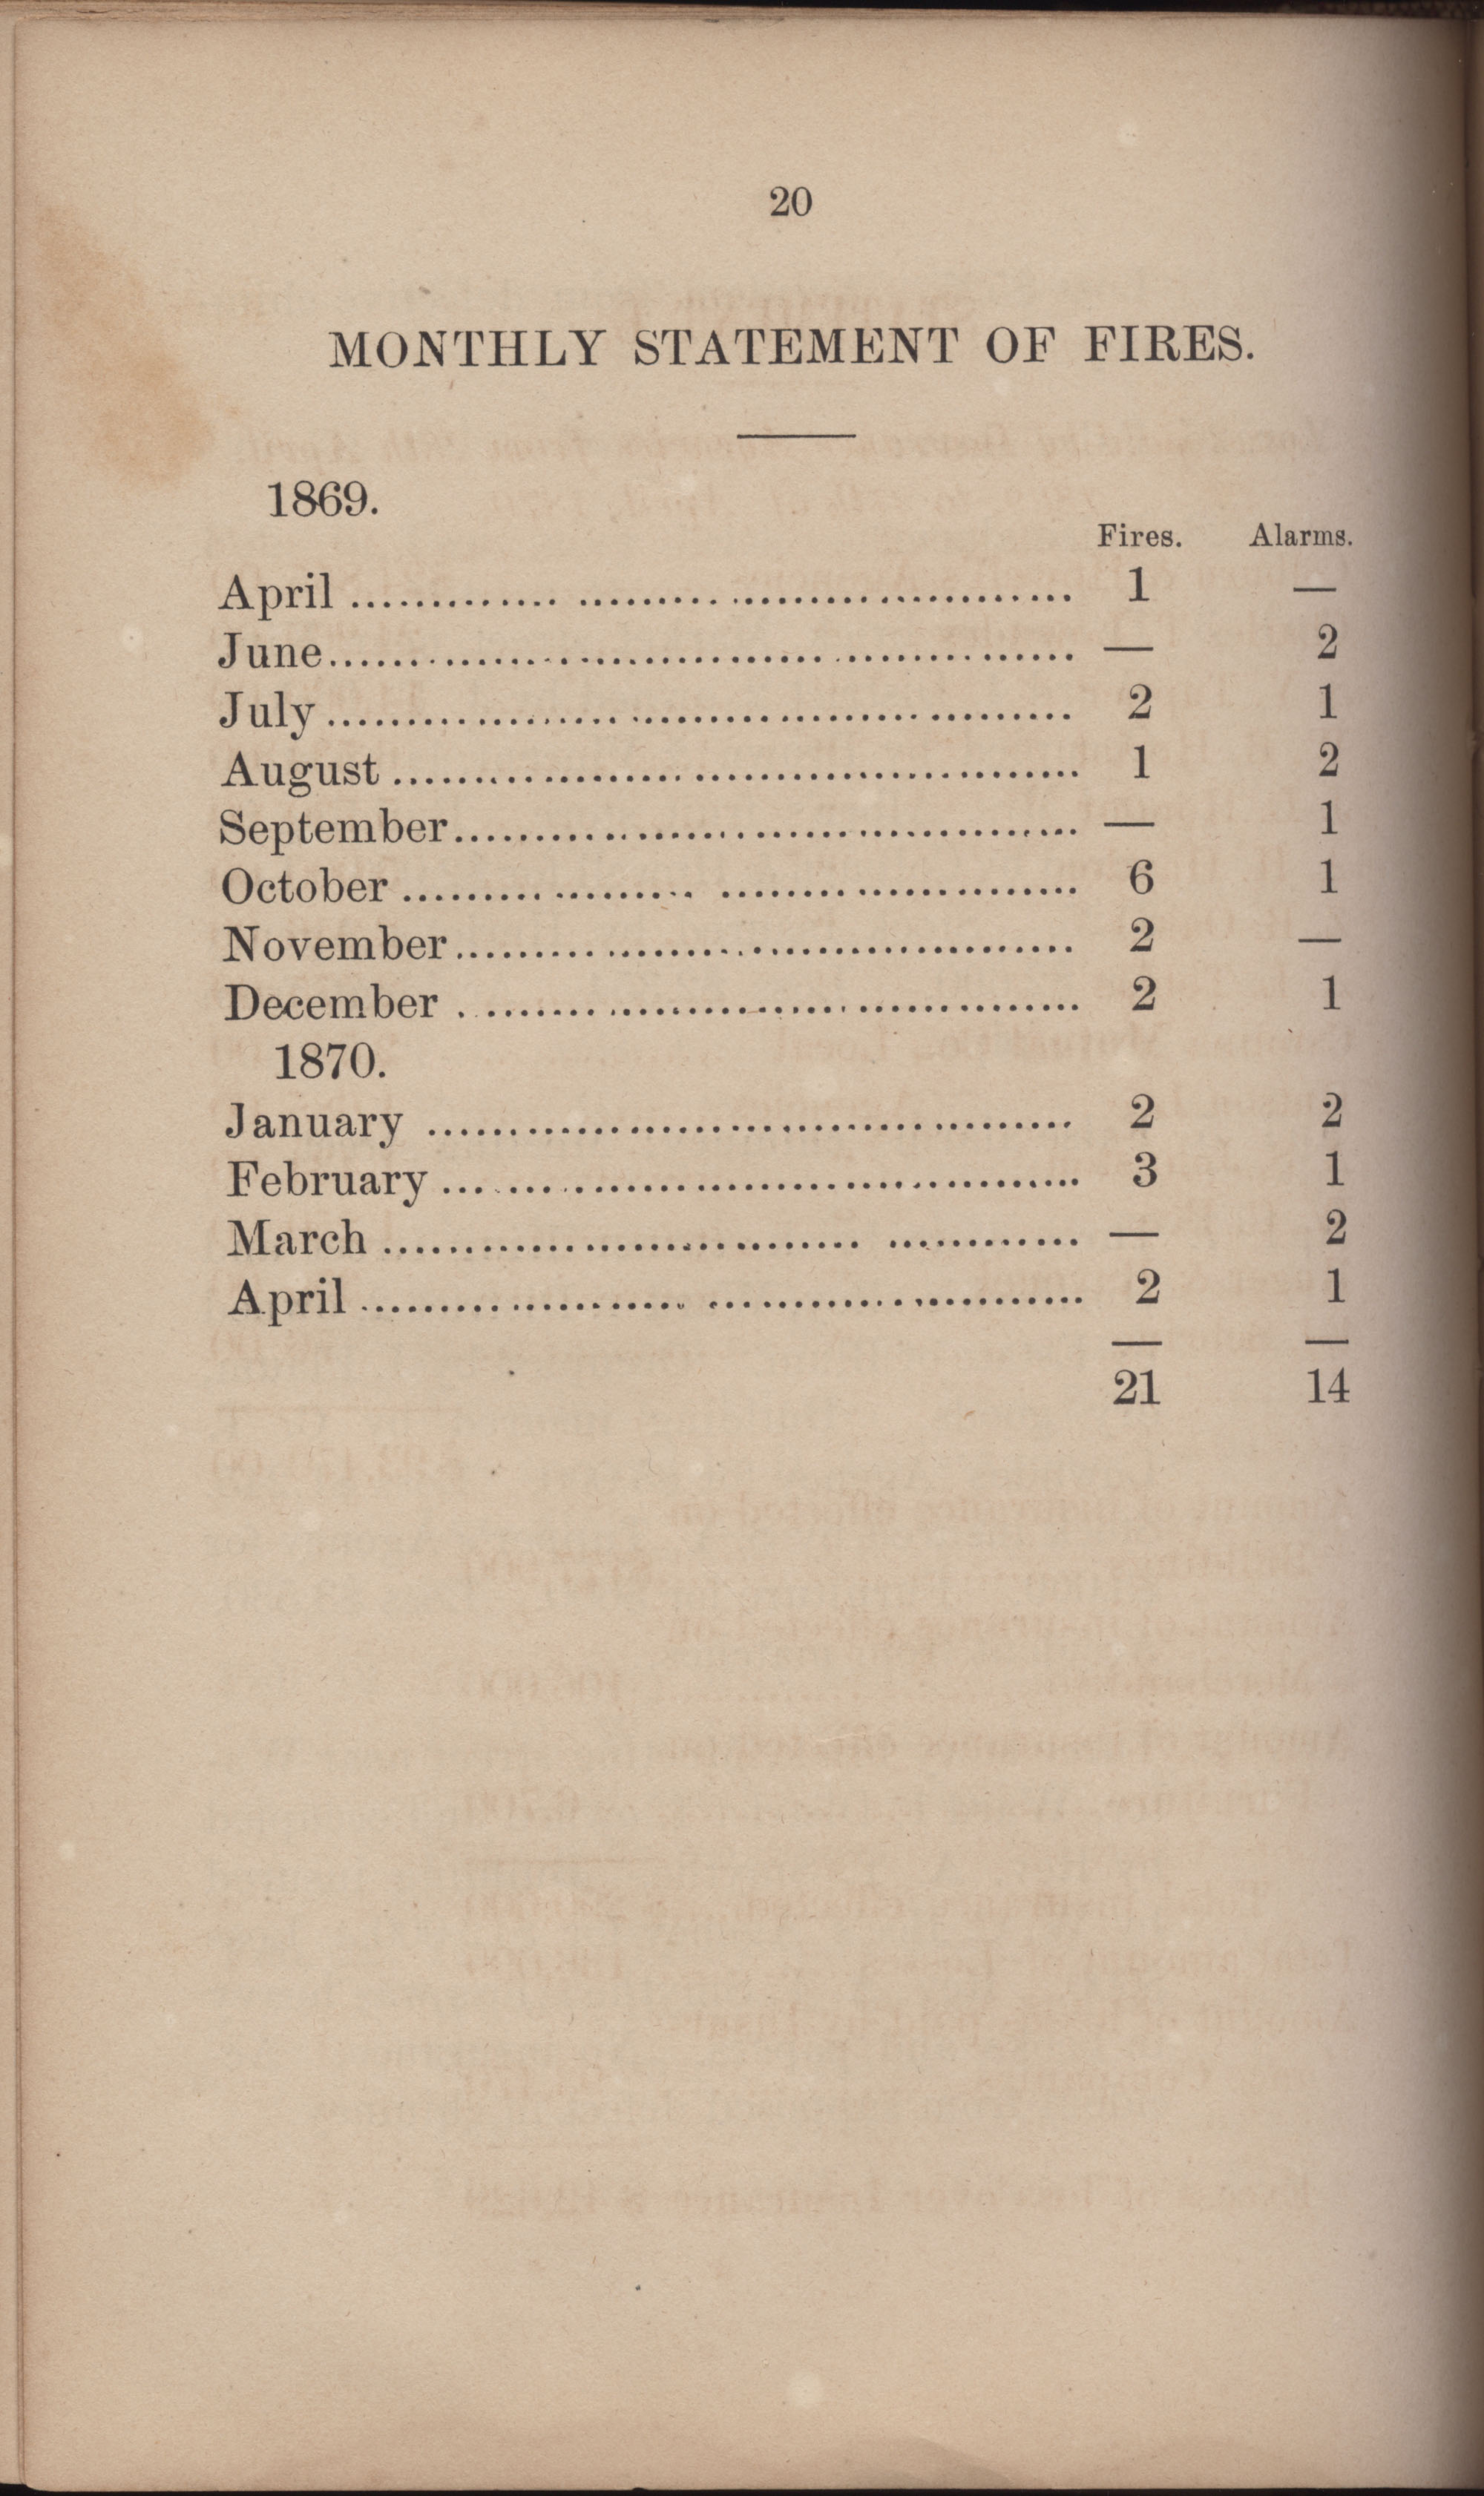 Annual Report of the Chief of the Fire Department of the City of Charleston, page 311